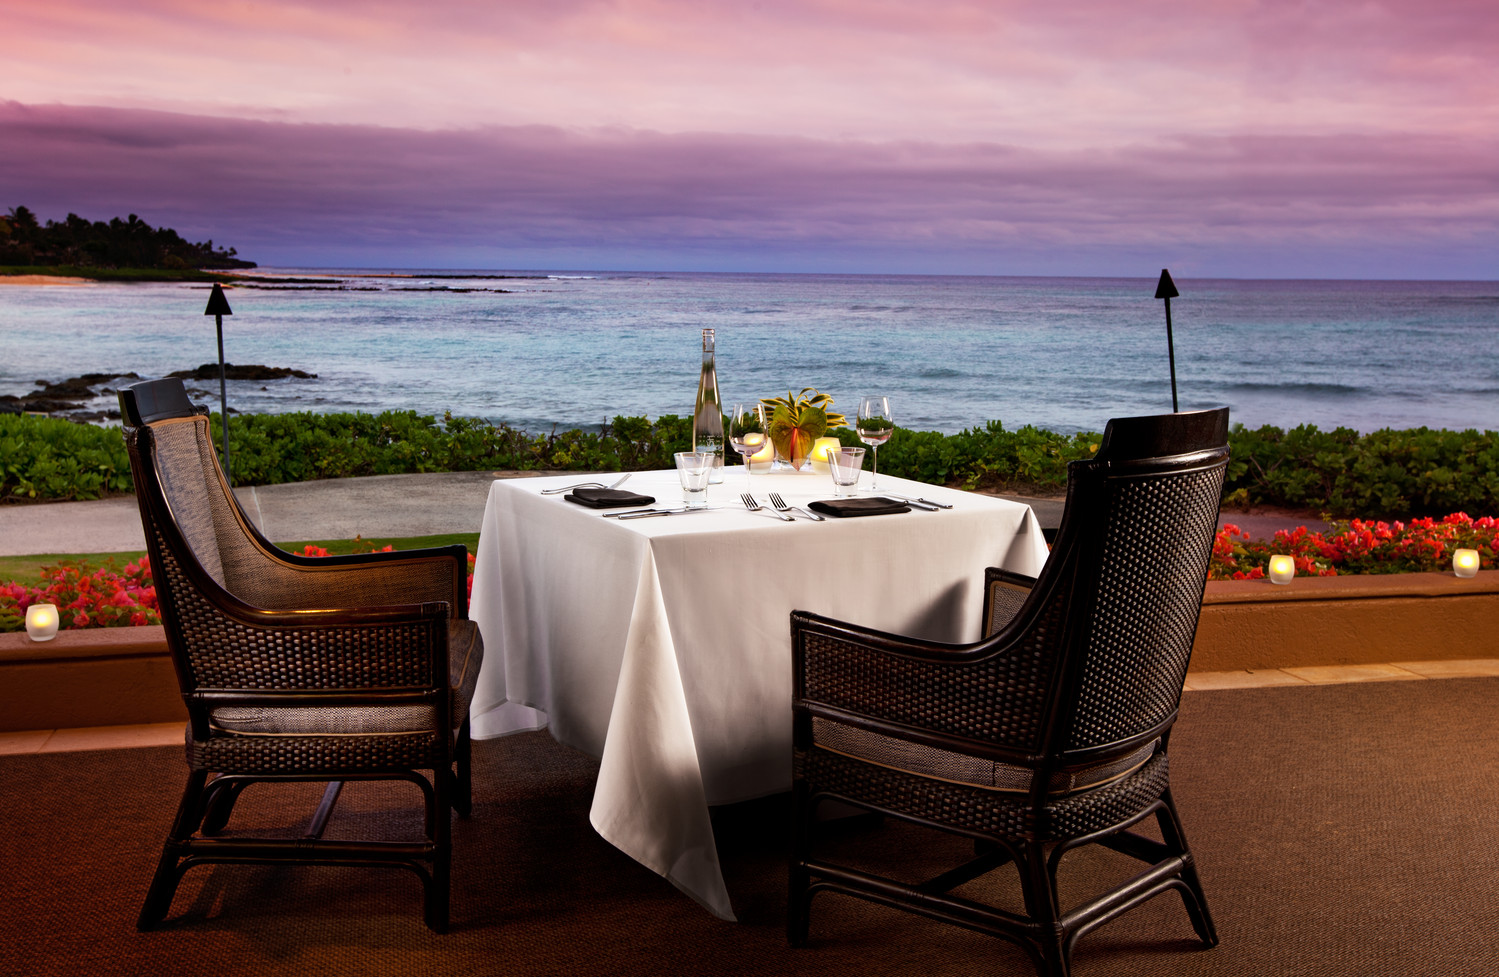 Halelani Private Dinner at Sheraton Kauai Resort in Hawaii